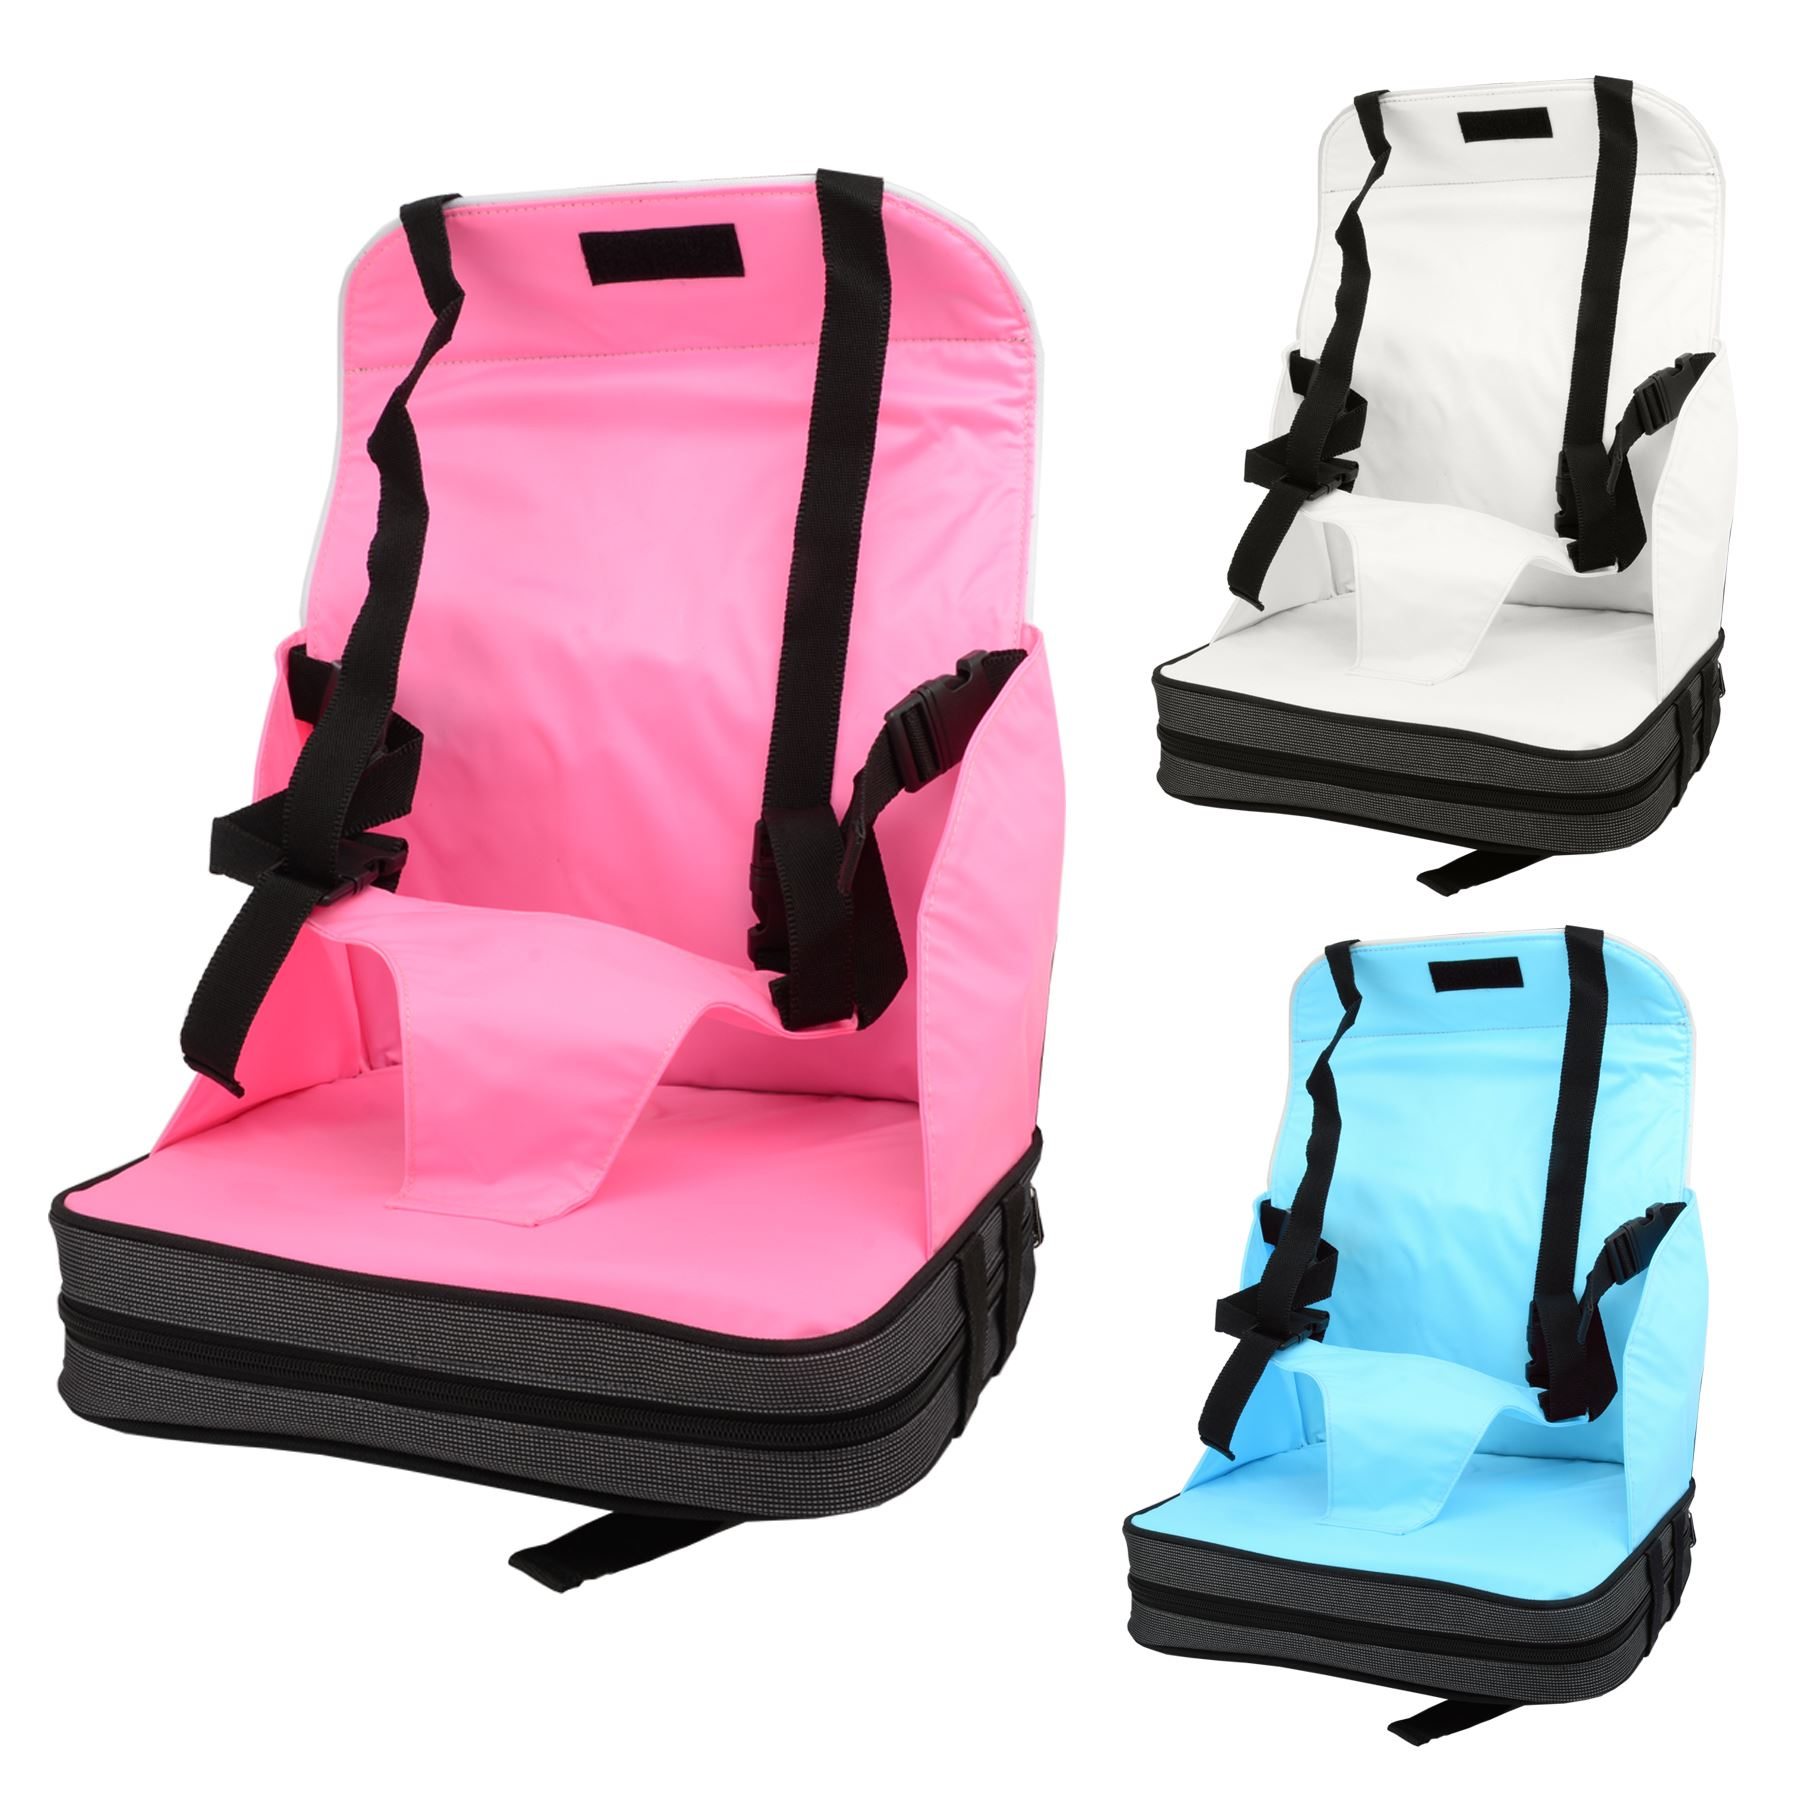 Babyhugs Portable Baby Toddler Foldable Dining Chair On the Go Booster Seat  eBay